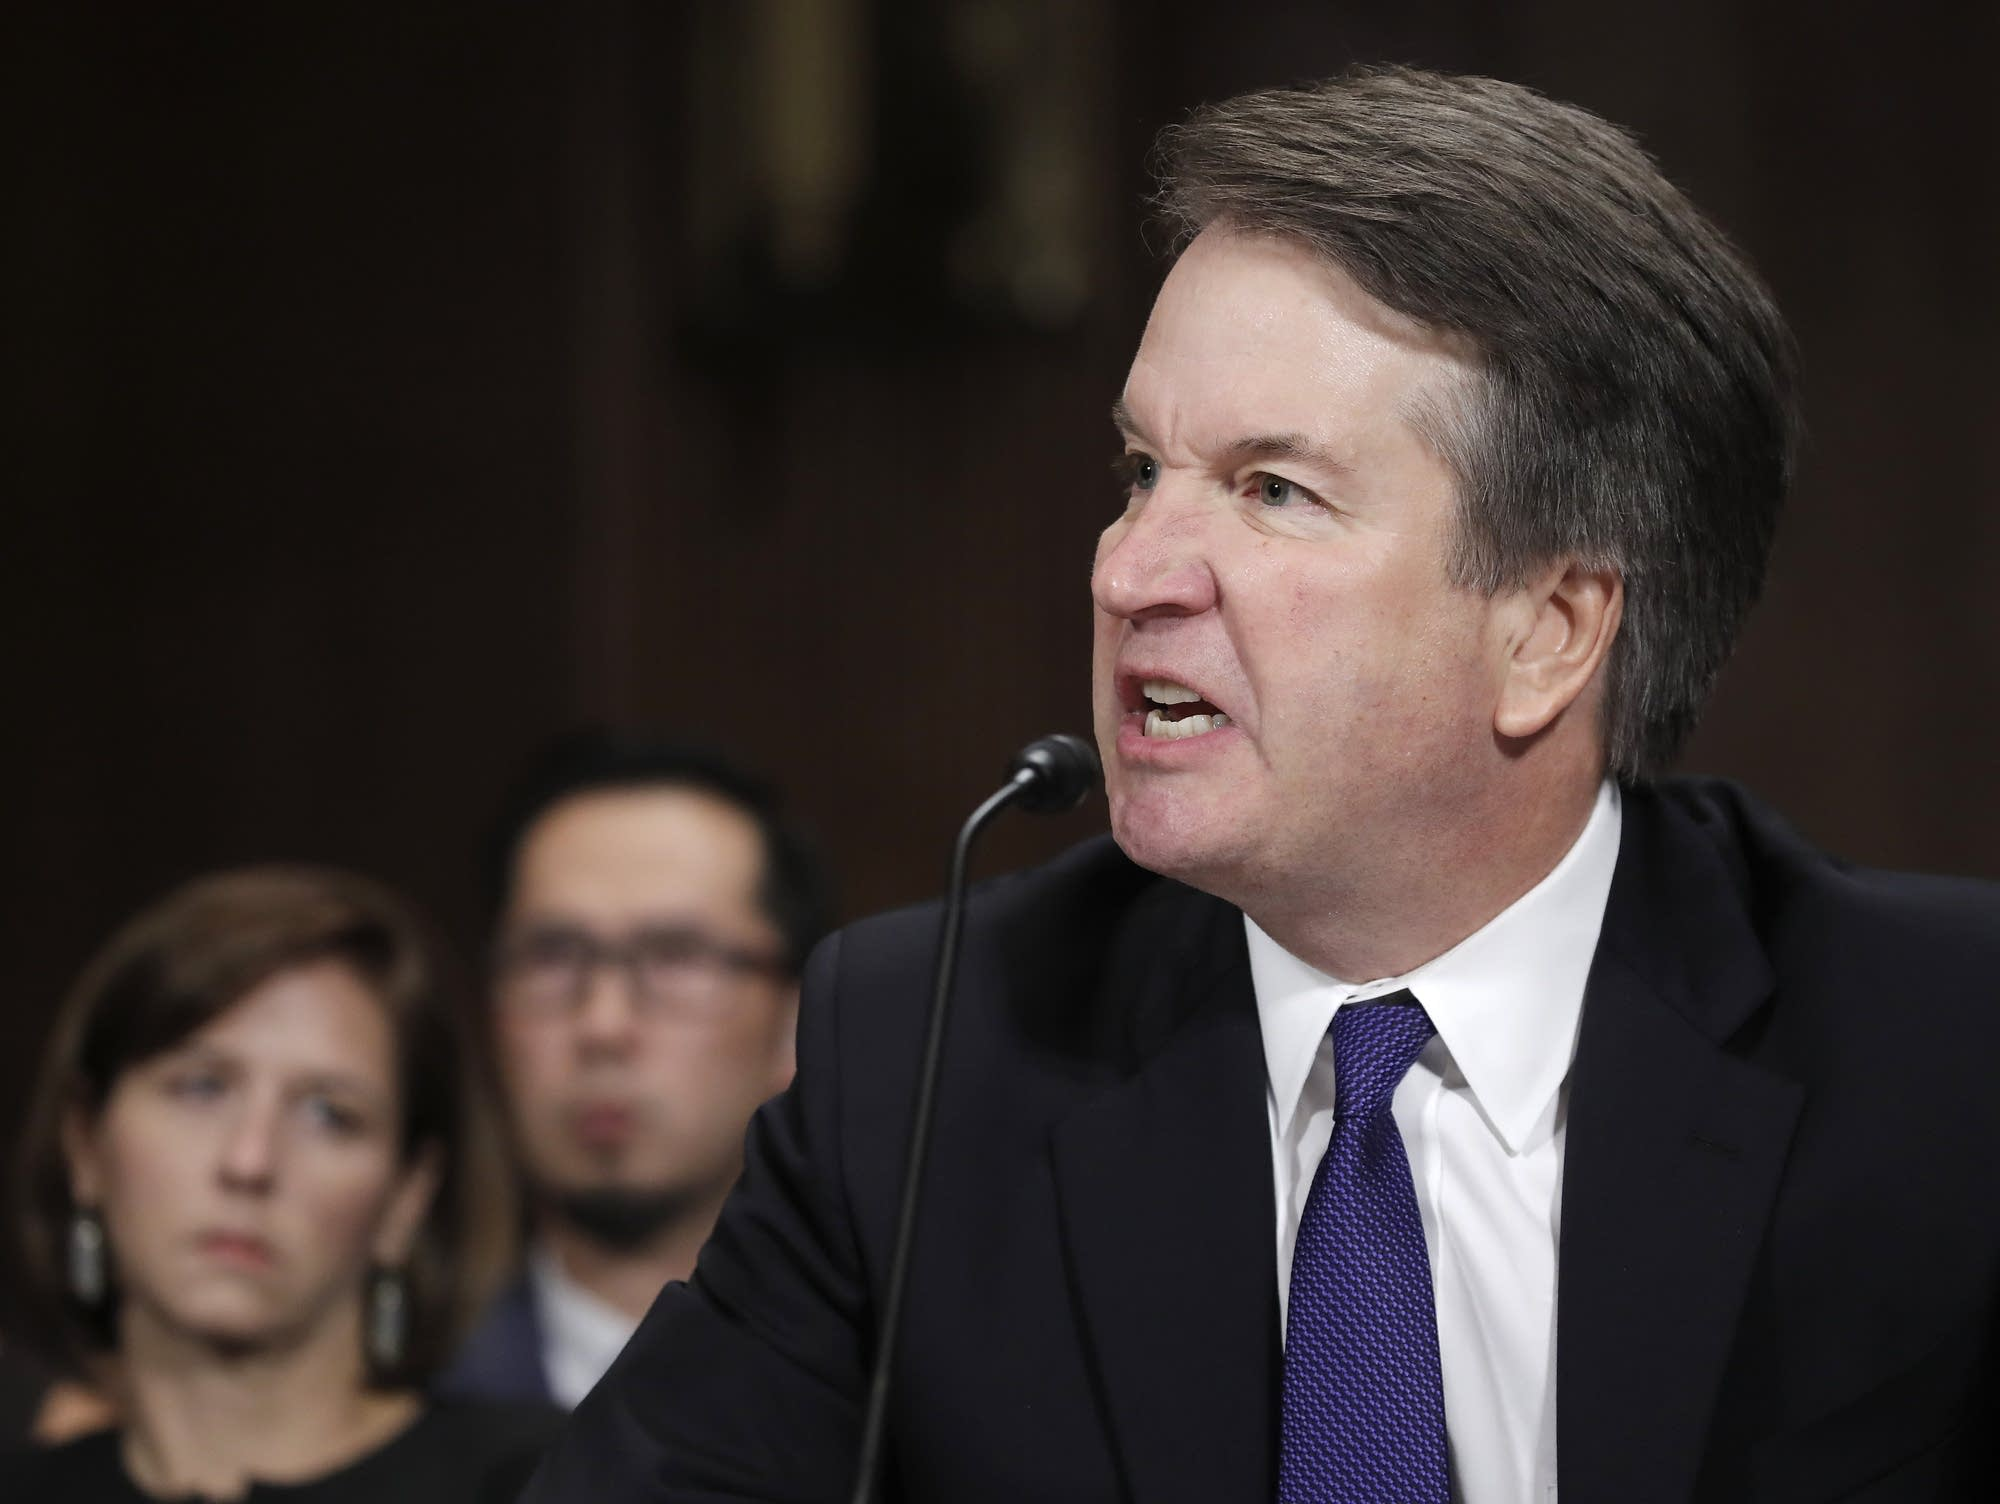 Supreme Court Nominee Brett Kavanaugh testifies